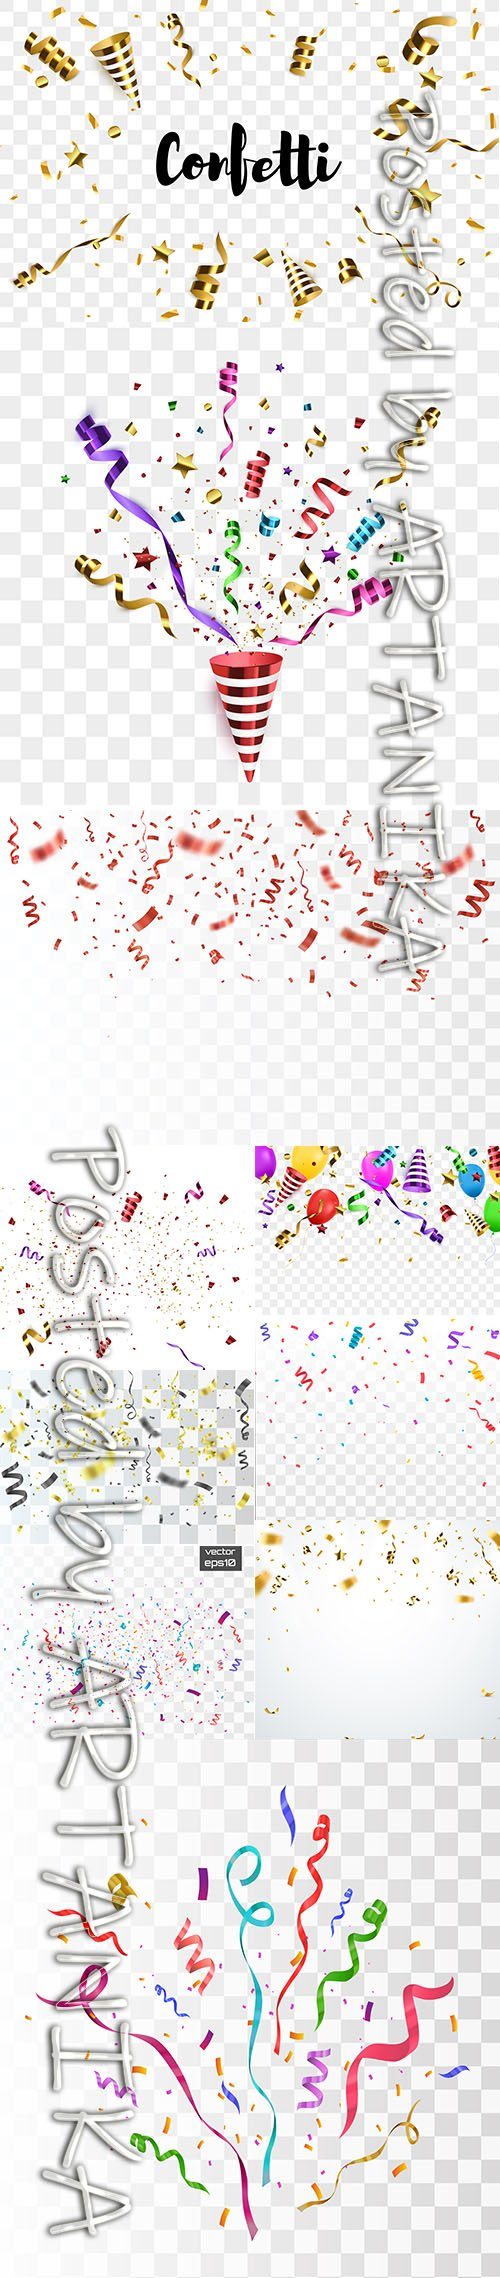 Colorful Confetti with Balloons Vector Illustration Set